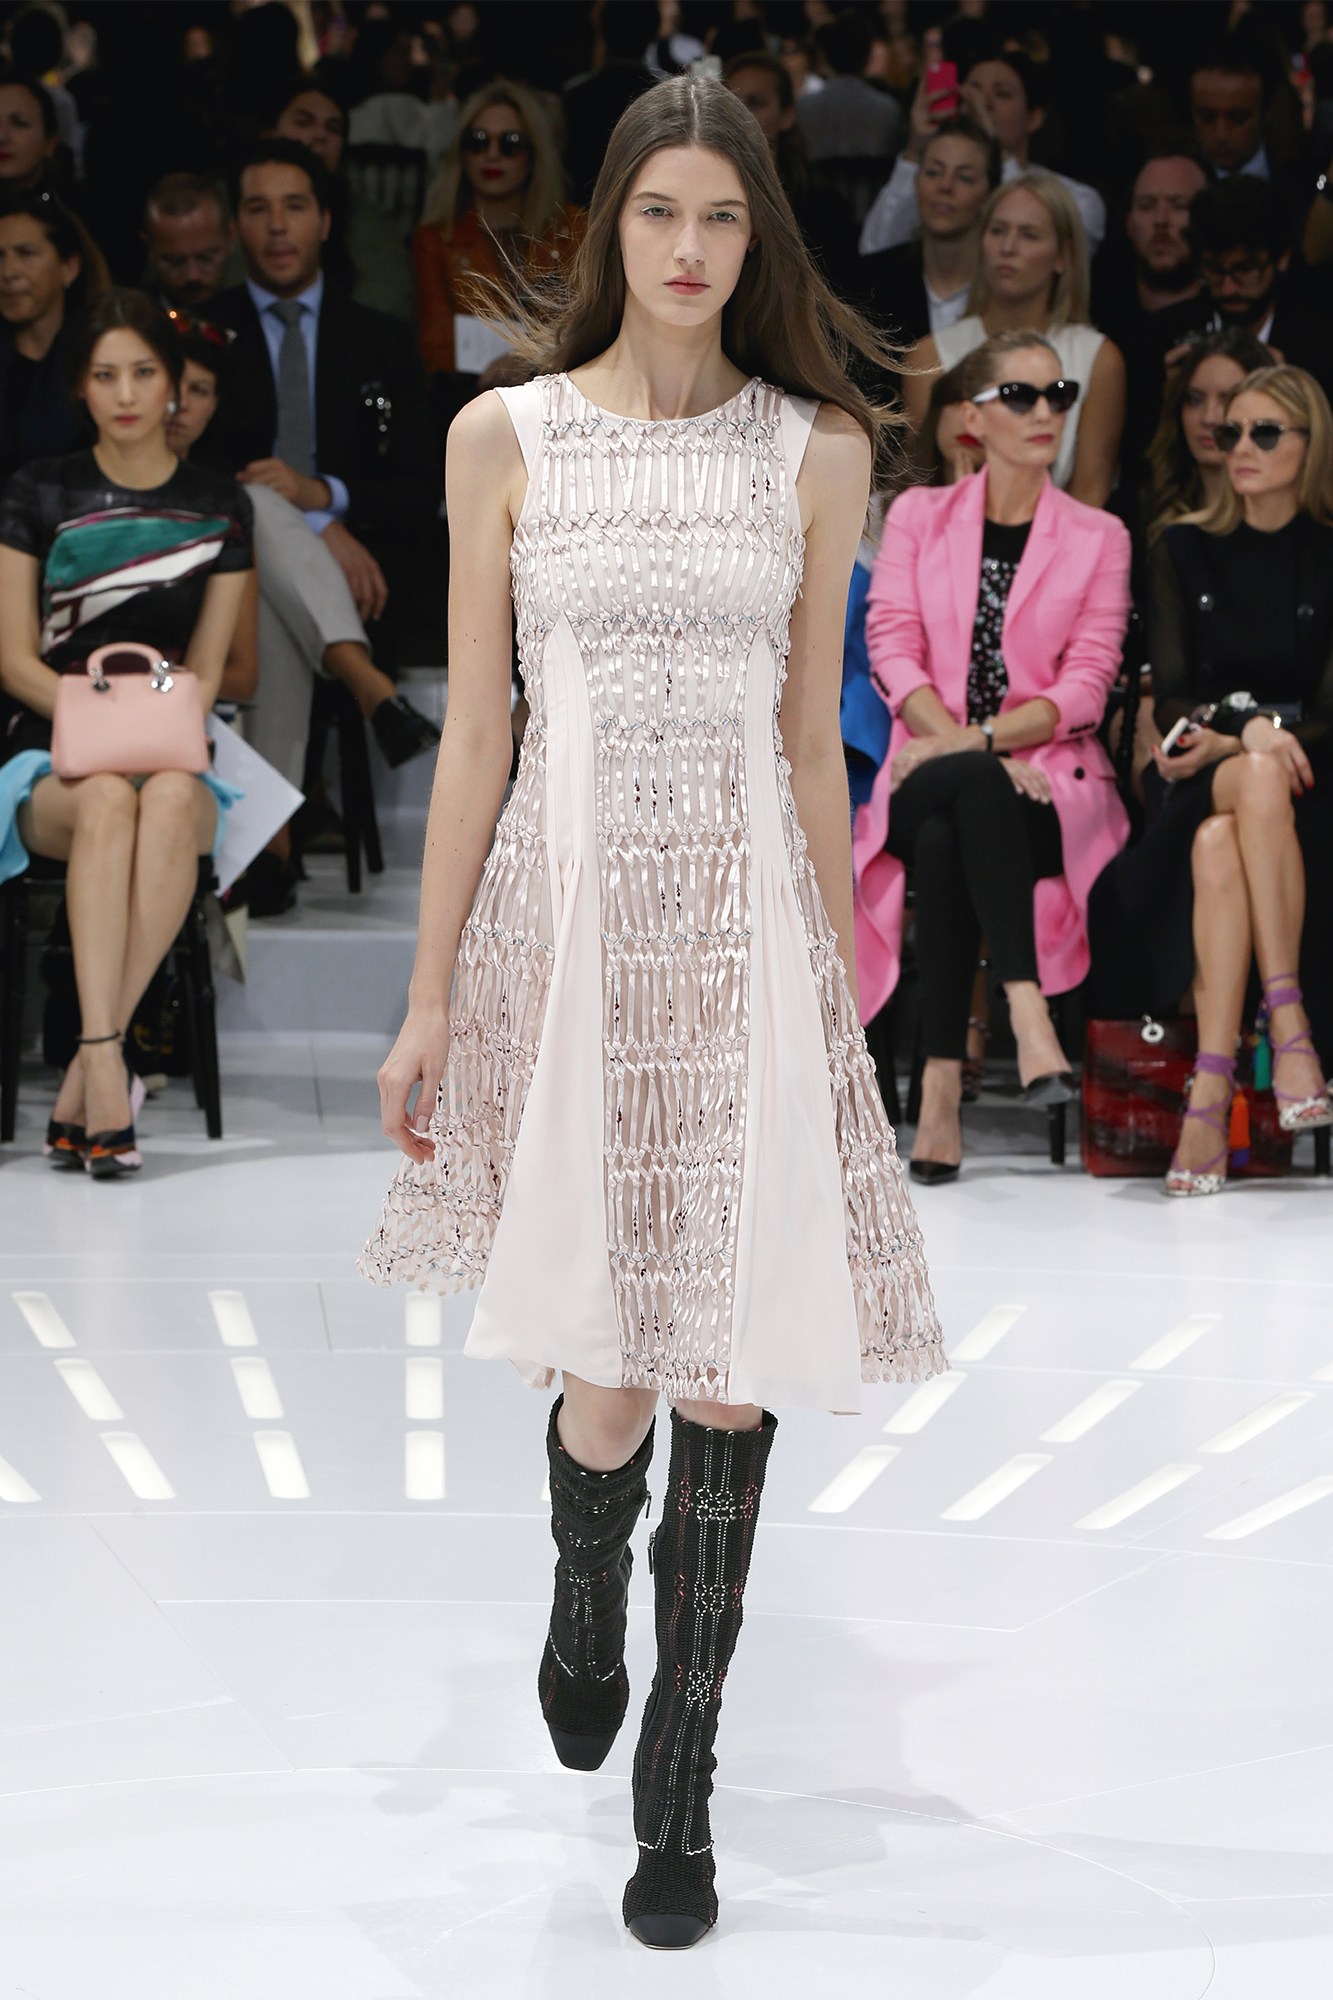 Christian Dior Haute Couture Spring-Summer Ready To Wear Dresses & Accessories Collection 2015-16 (34)